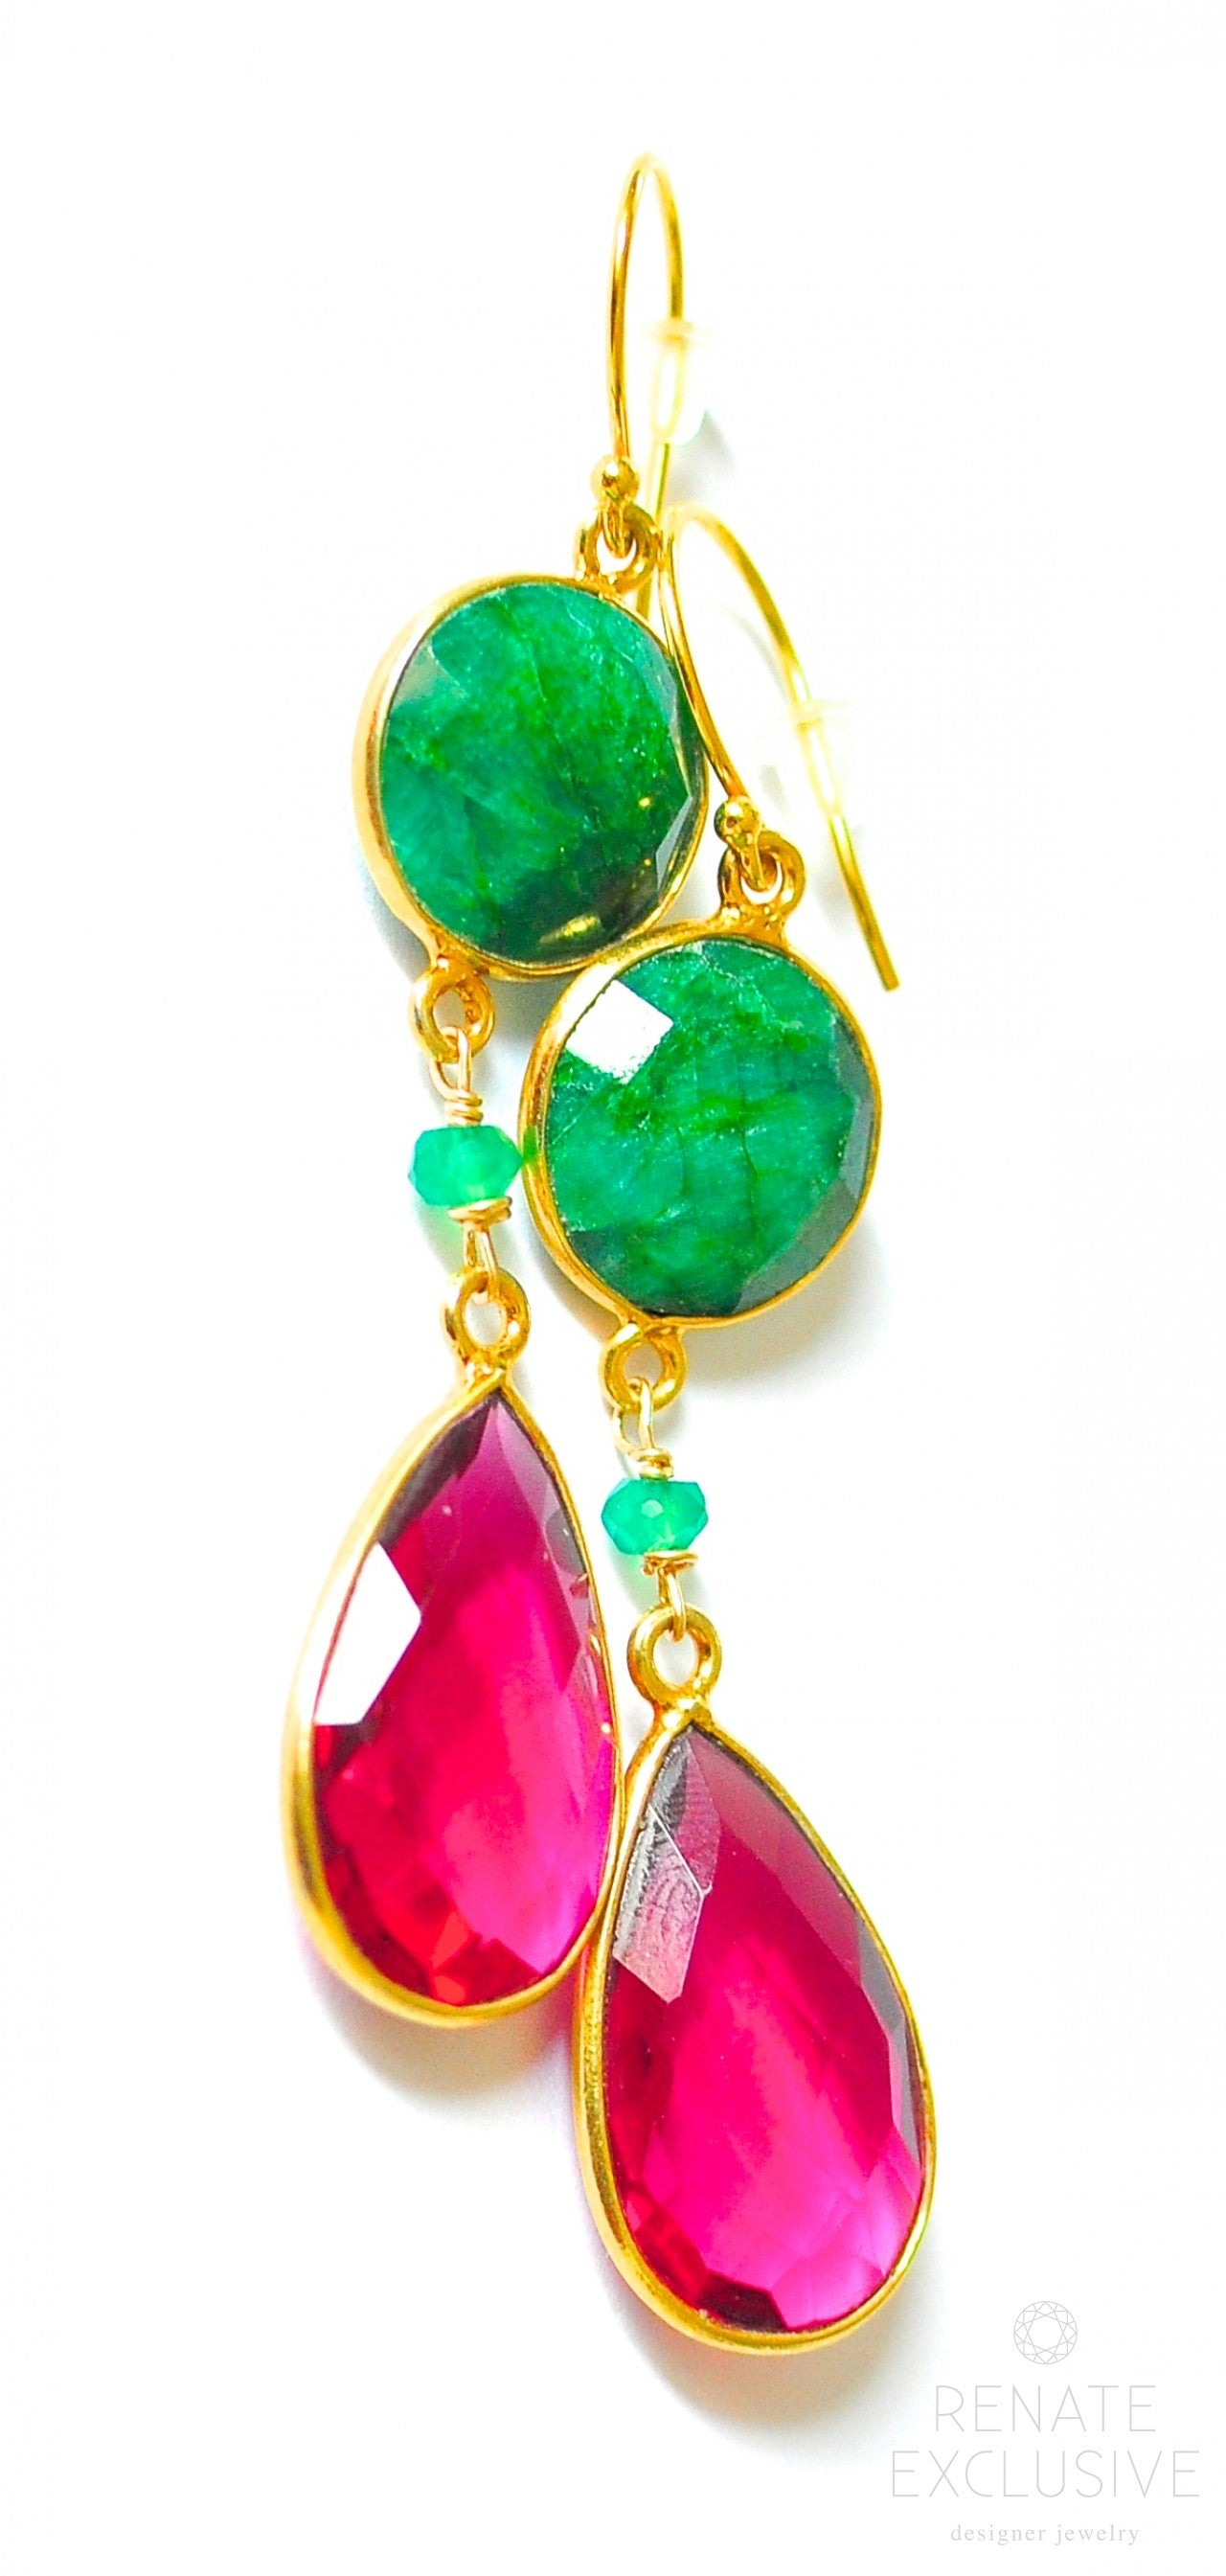 earrings types jewelry gold set treatments natural you emerald stones can and look various necklace